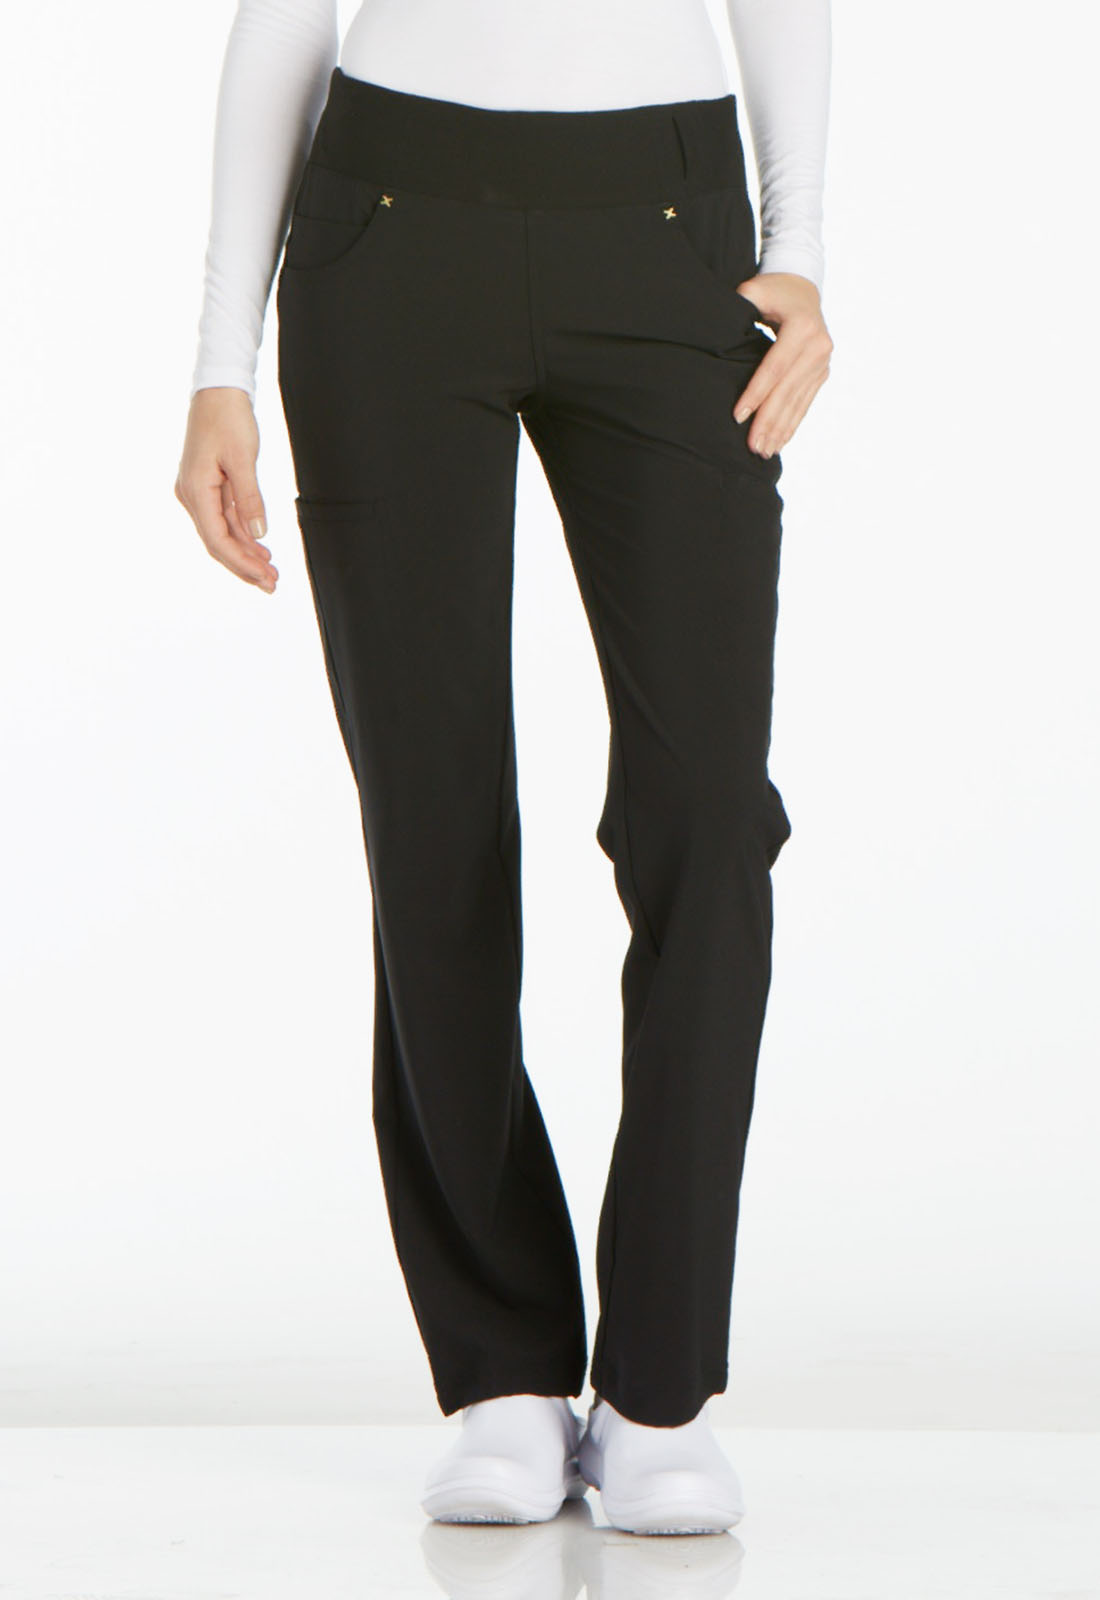 e0bfc149ac5 iFlex Mid Rise Straight Leg Pull-on Pant in Black CK002-BLK from ...